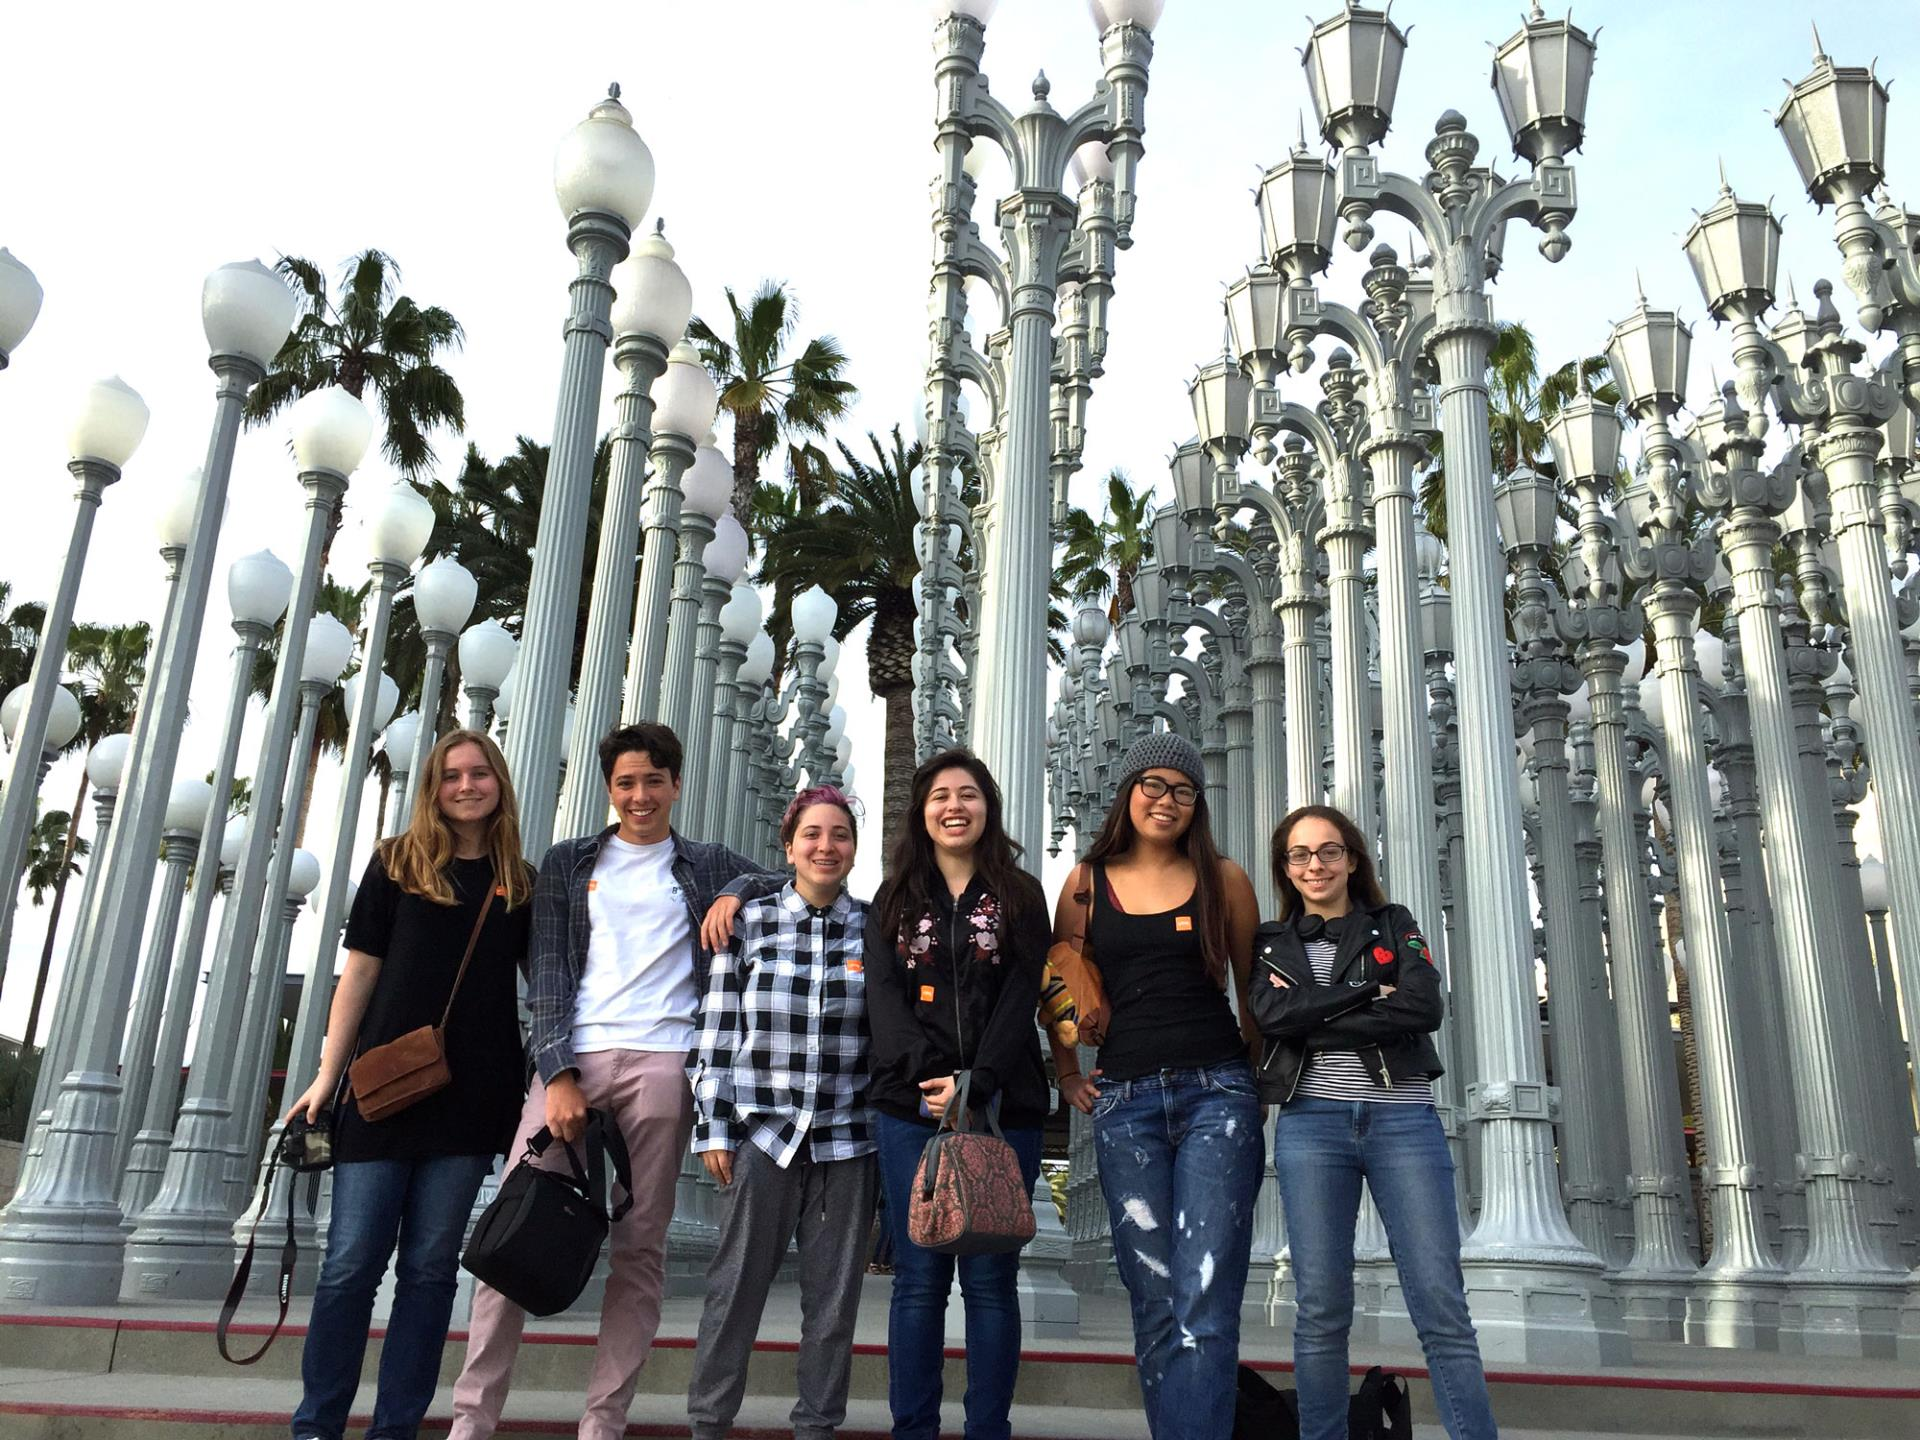 Field trip to LACMA (Los Angeles County Museum of Art)